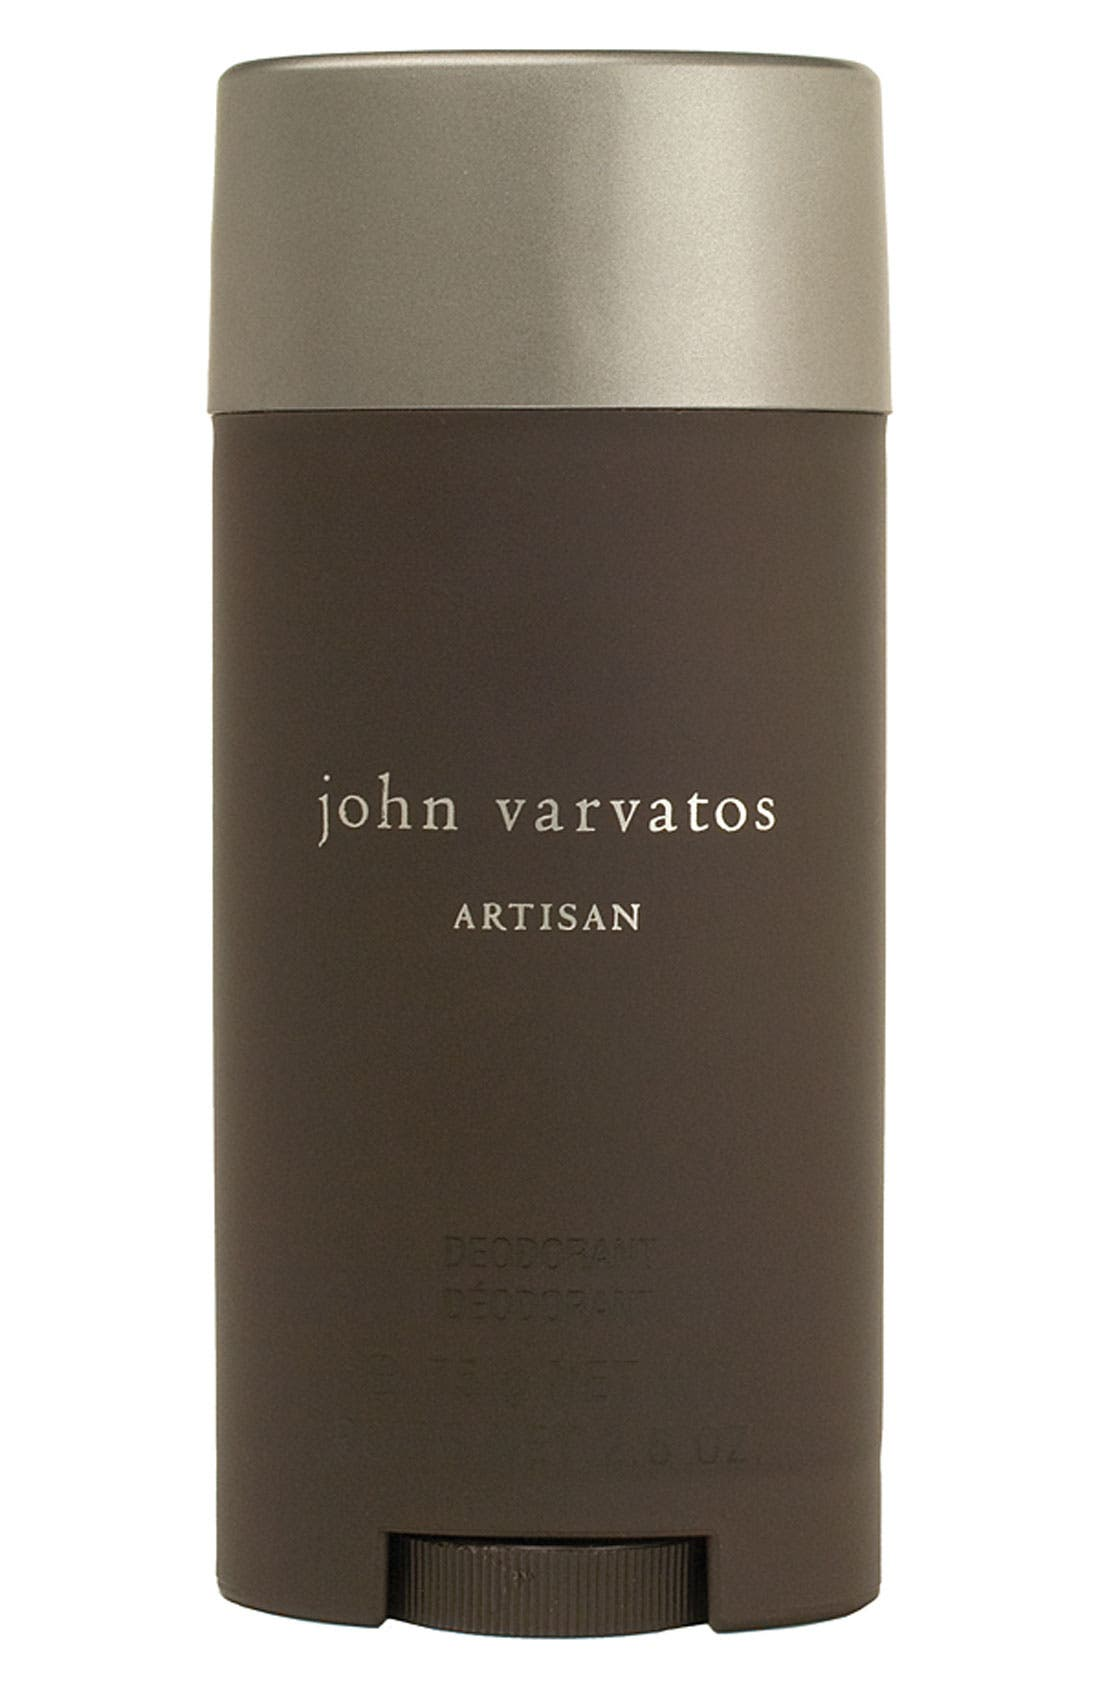 John Varvatos 'Artisan' Deodorant Stick,                             Main thumbnail 1, color,                             NO COLOR